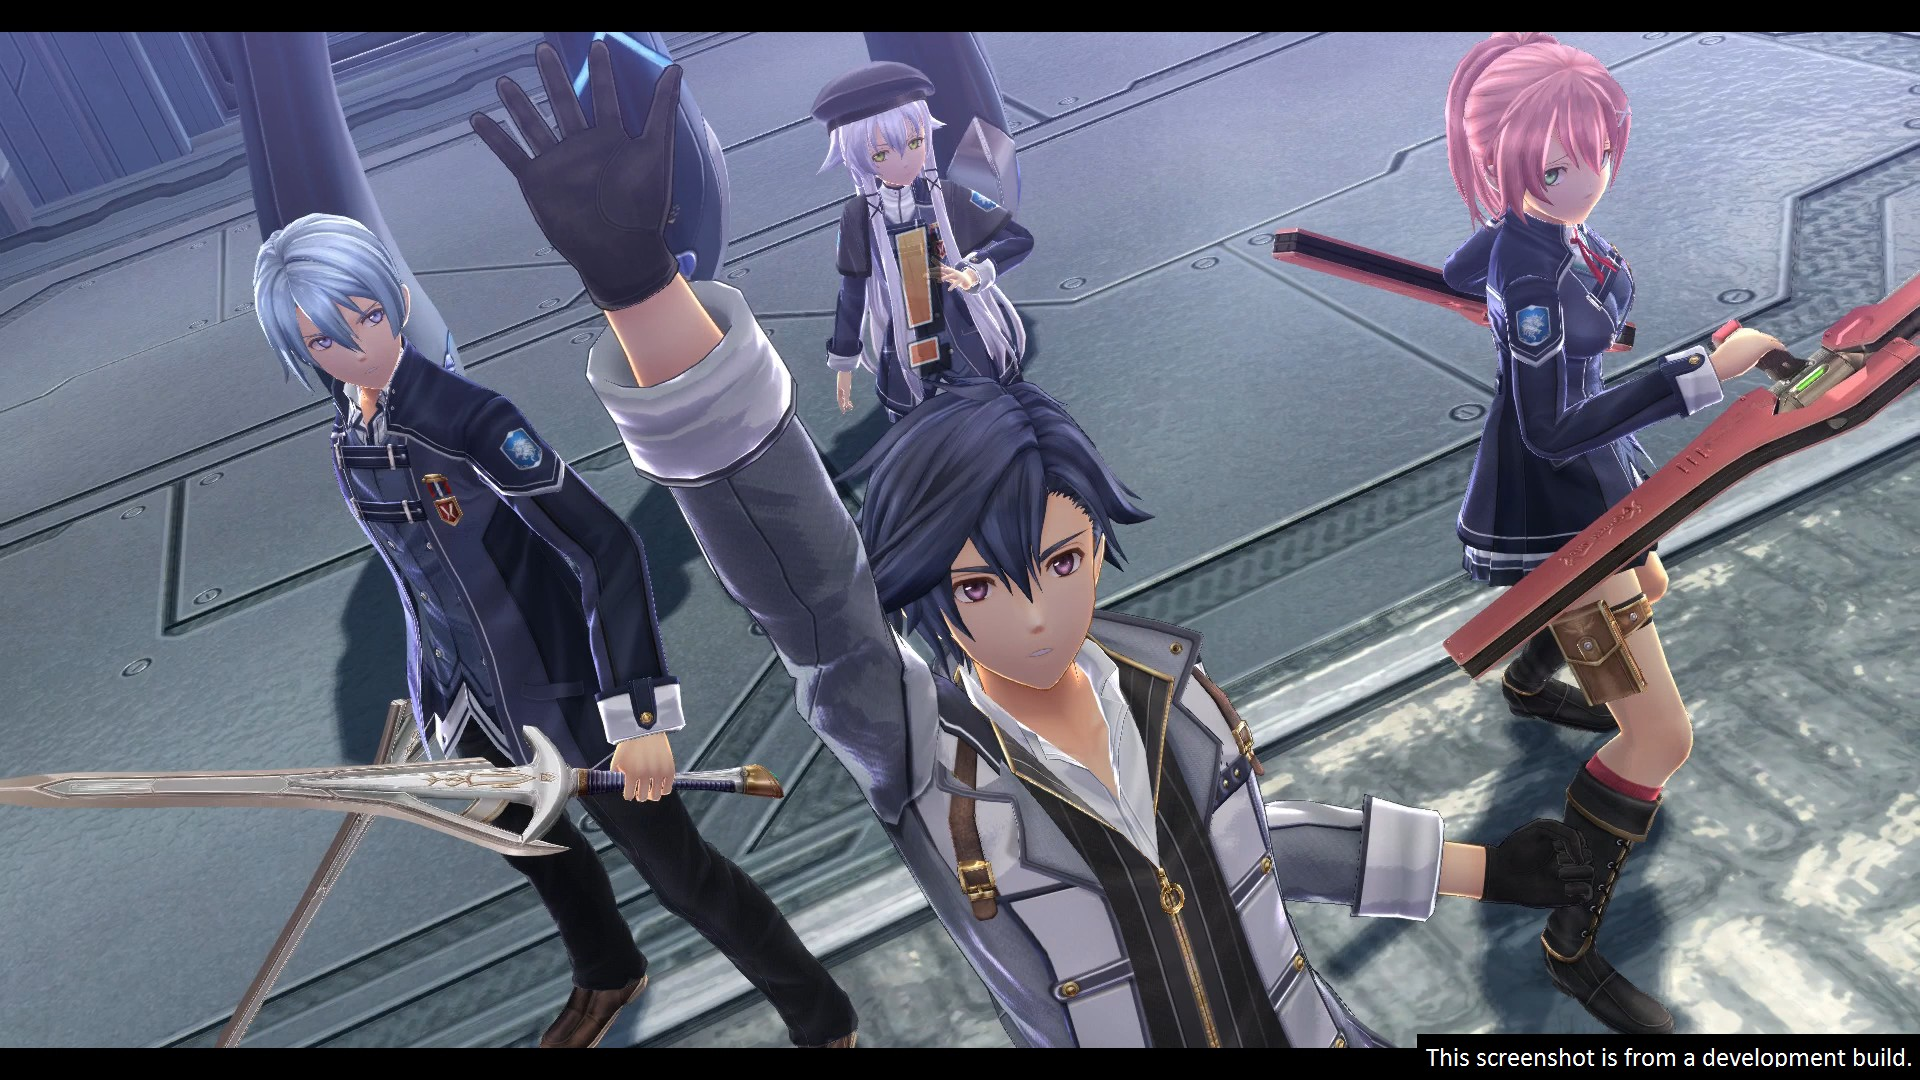 The Legend of Heroes: Trails of Cold Steel III,The Legend of Heroes: Trails of Cold Steel 3, NIS America, release date, gameplay, features, price, pre-order, demo, english demo, west, news, update, PS4, PlayStation 4, US, EU, North America, Europe, trailer